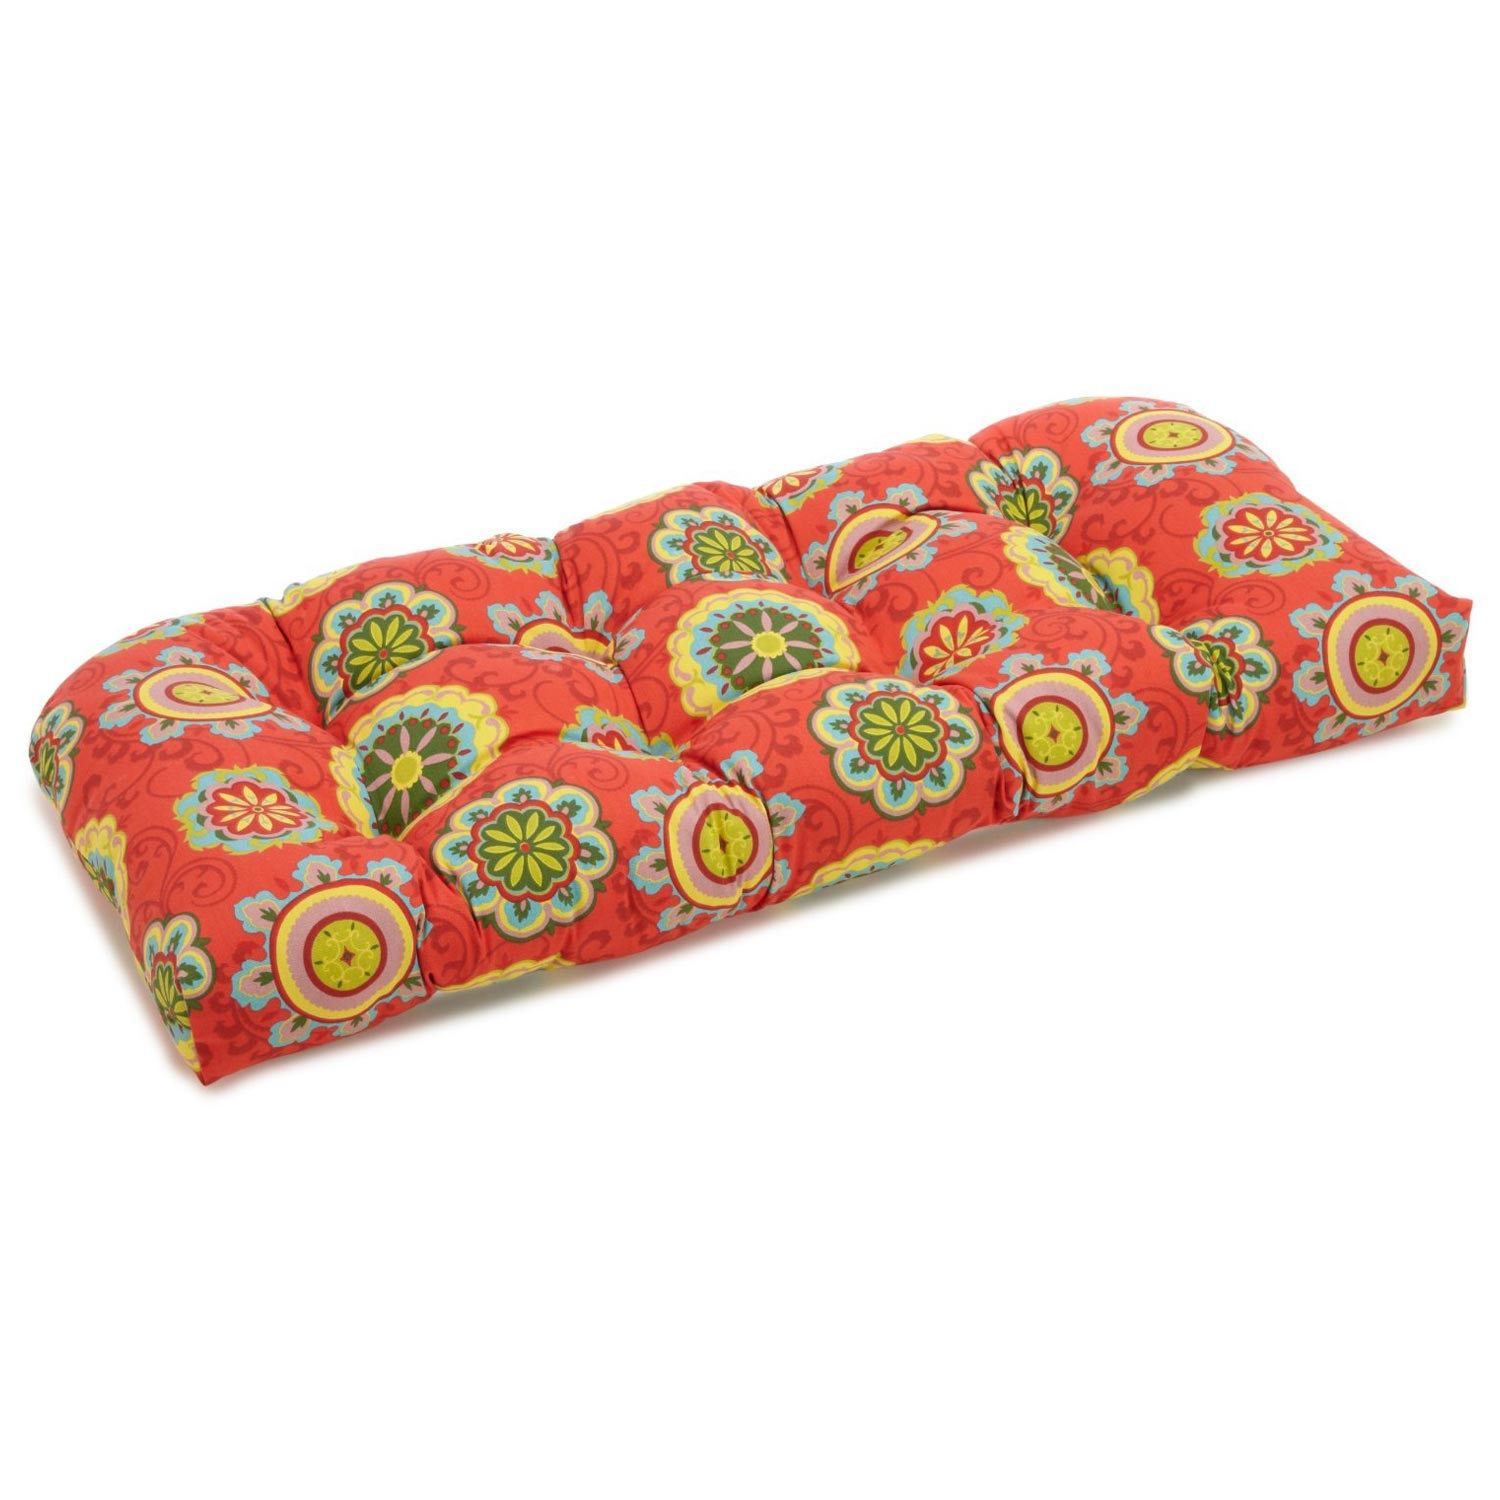 U-Shaped Patio Bench Cushion - Tufted, Patterned Fabric